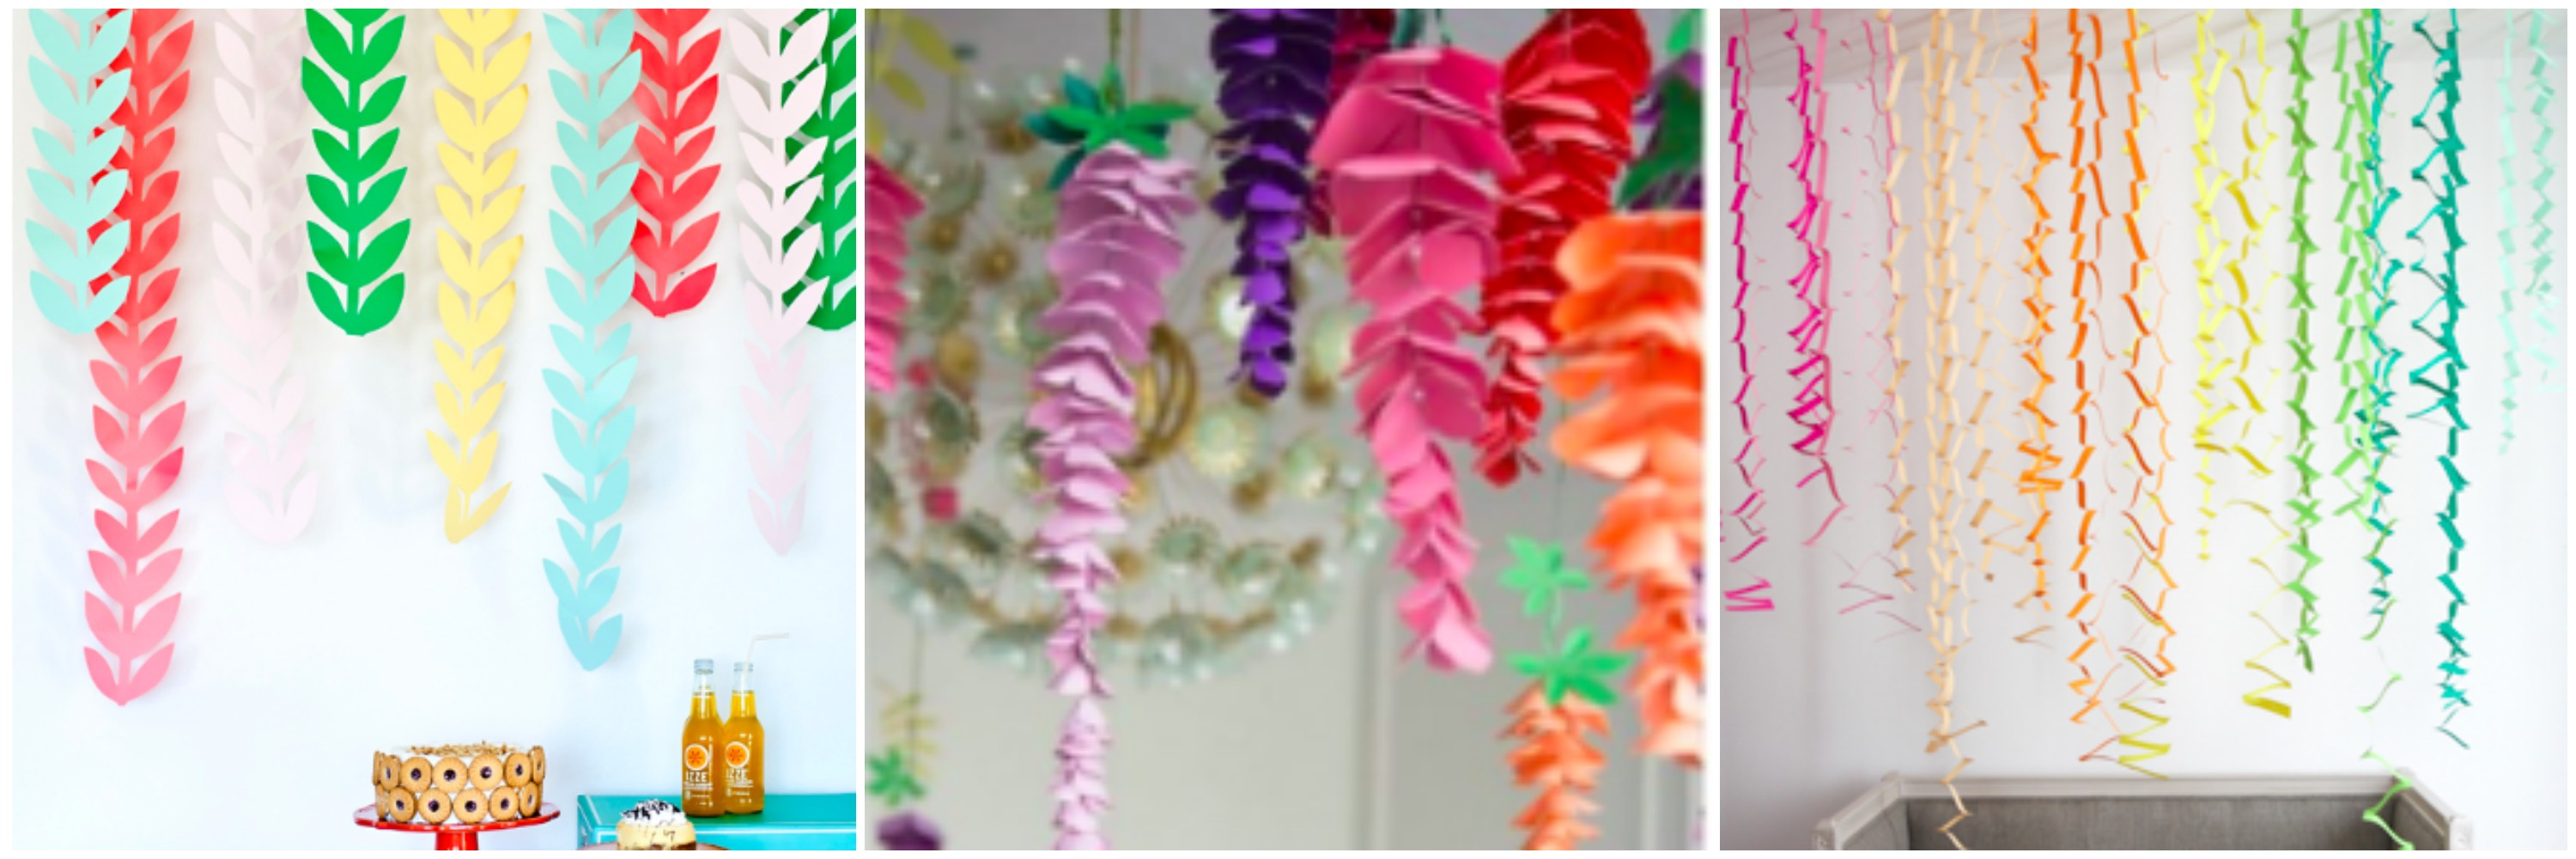 Streamer ideas for DIY baby shower decorations